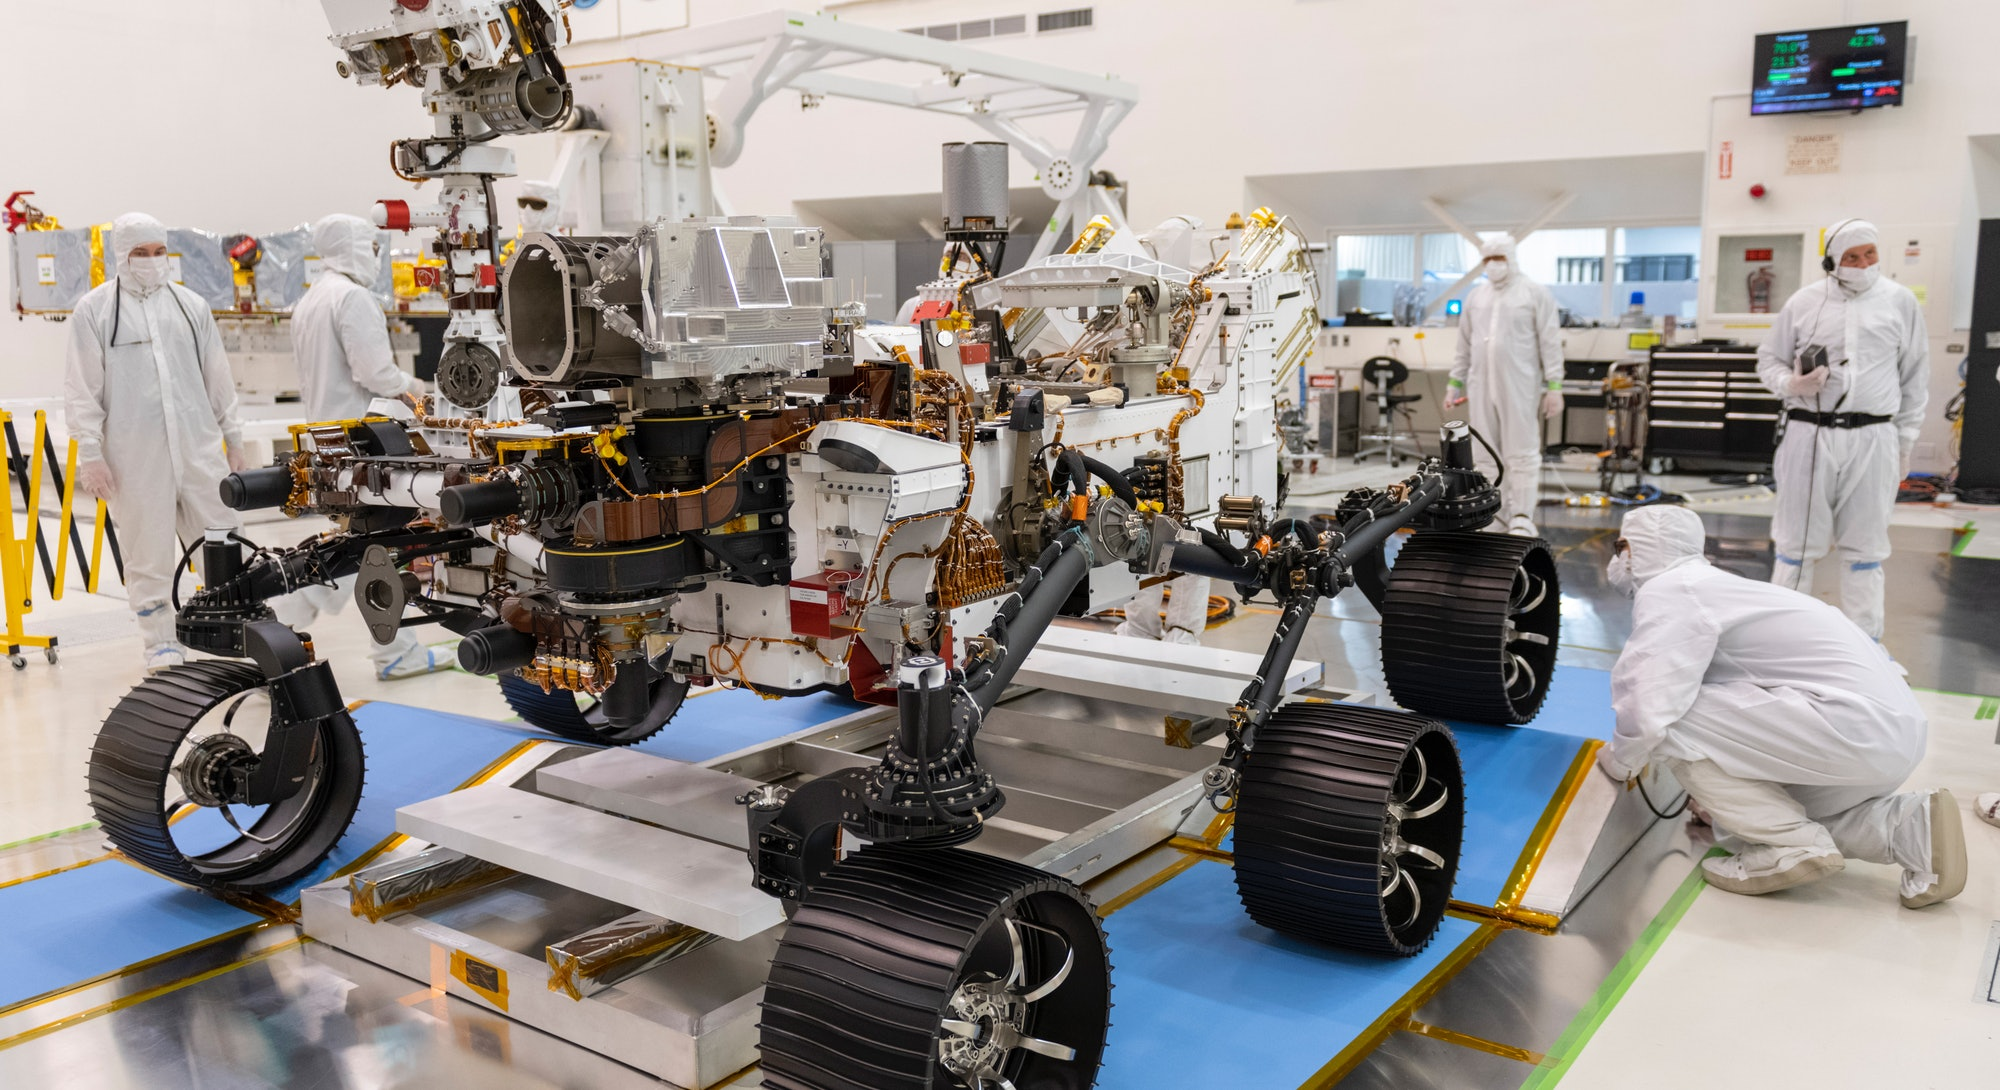 An image of the perseverance rover in the lab at NASA's Jet Propulsion Laboratory.